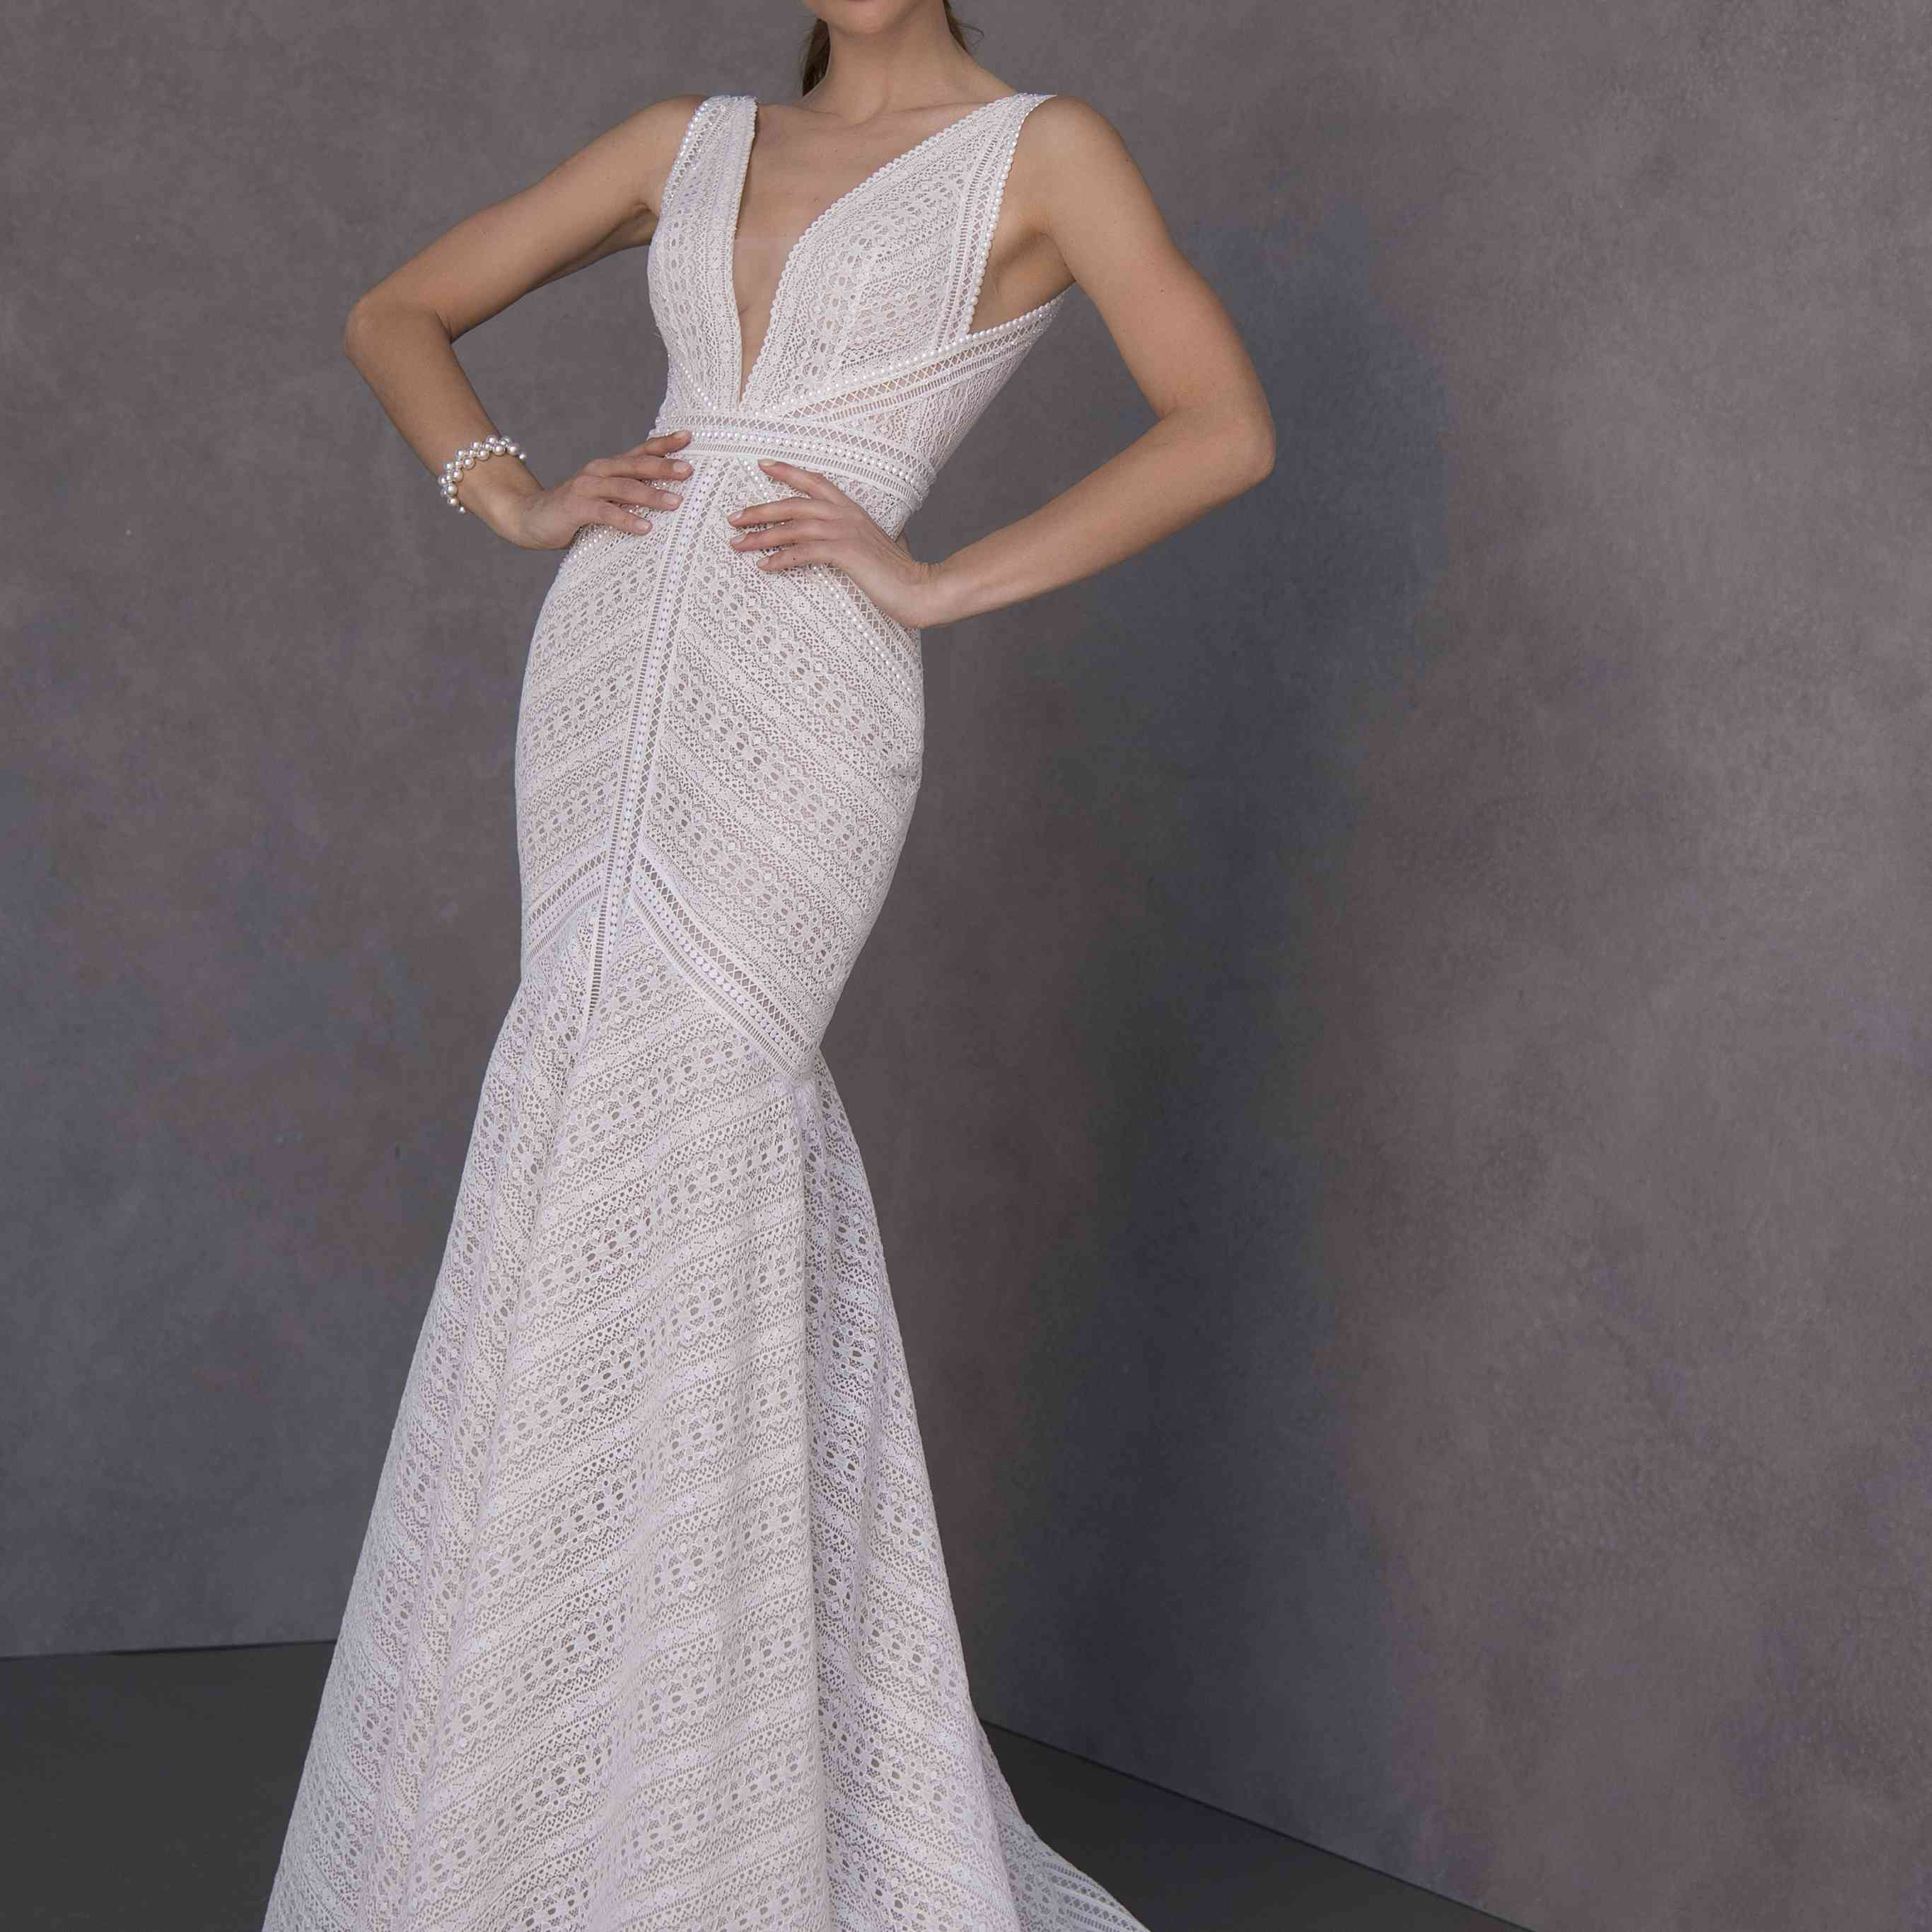 Model in geometric lace fit-and-flare gown with an illusion neckline